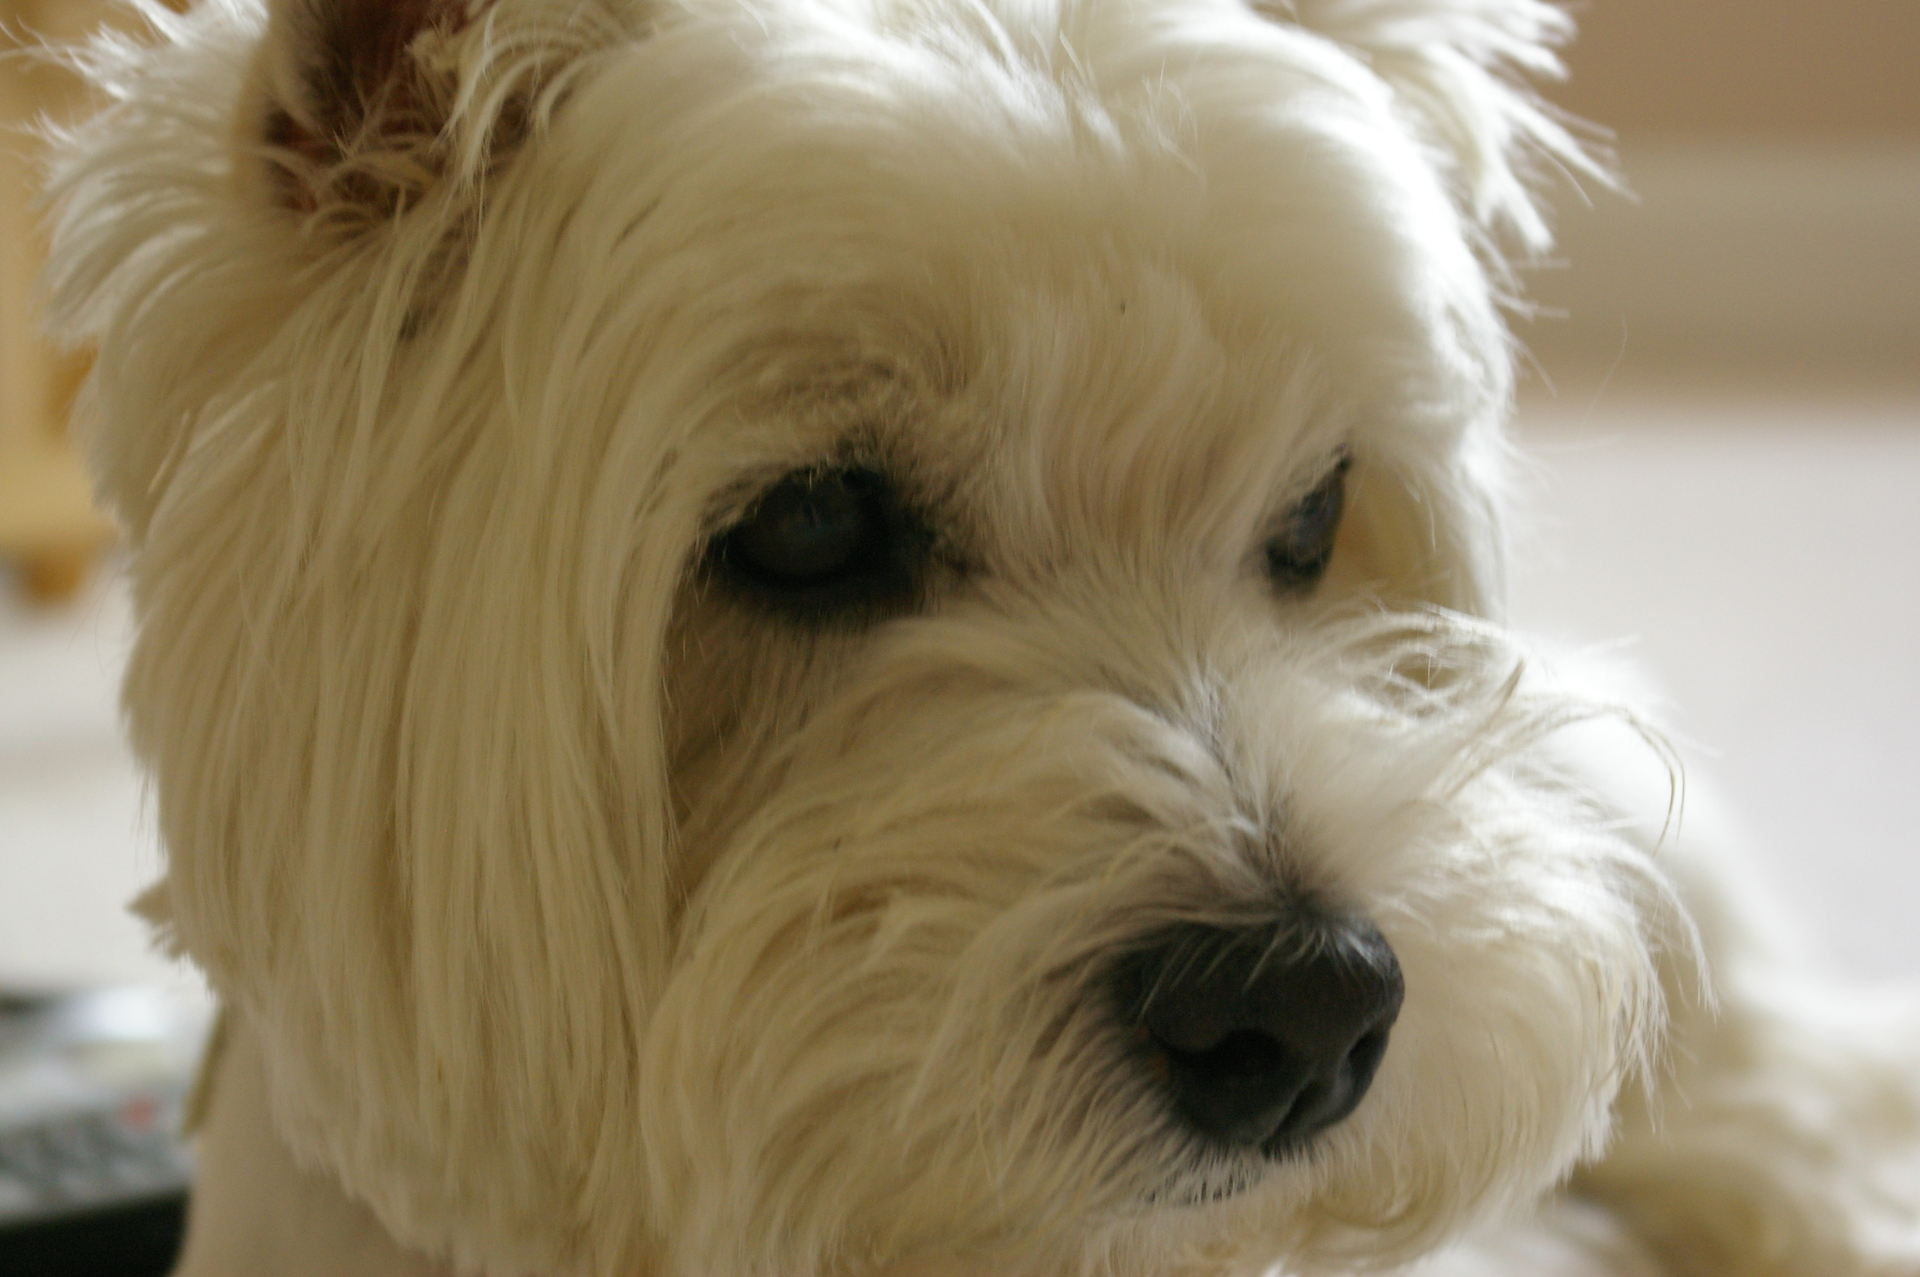 http://images.fanpop.com/images/image_uploads/westie-west-highland-white-terriers-380168_1920_1277.jpg